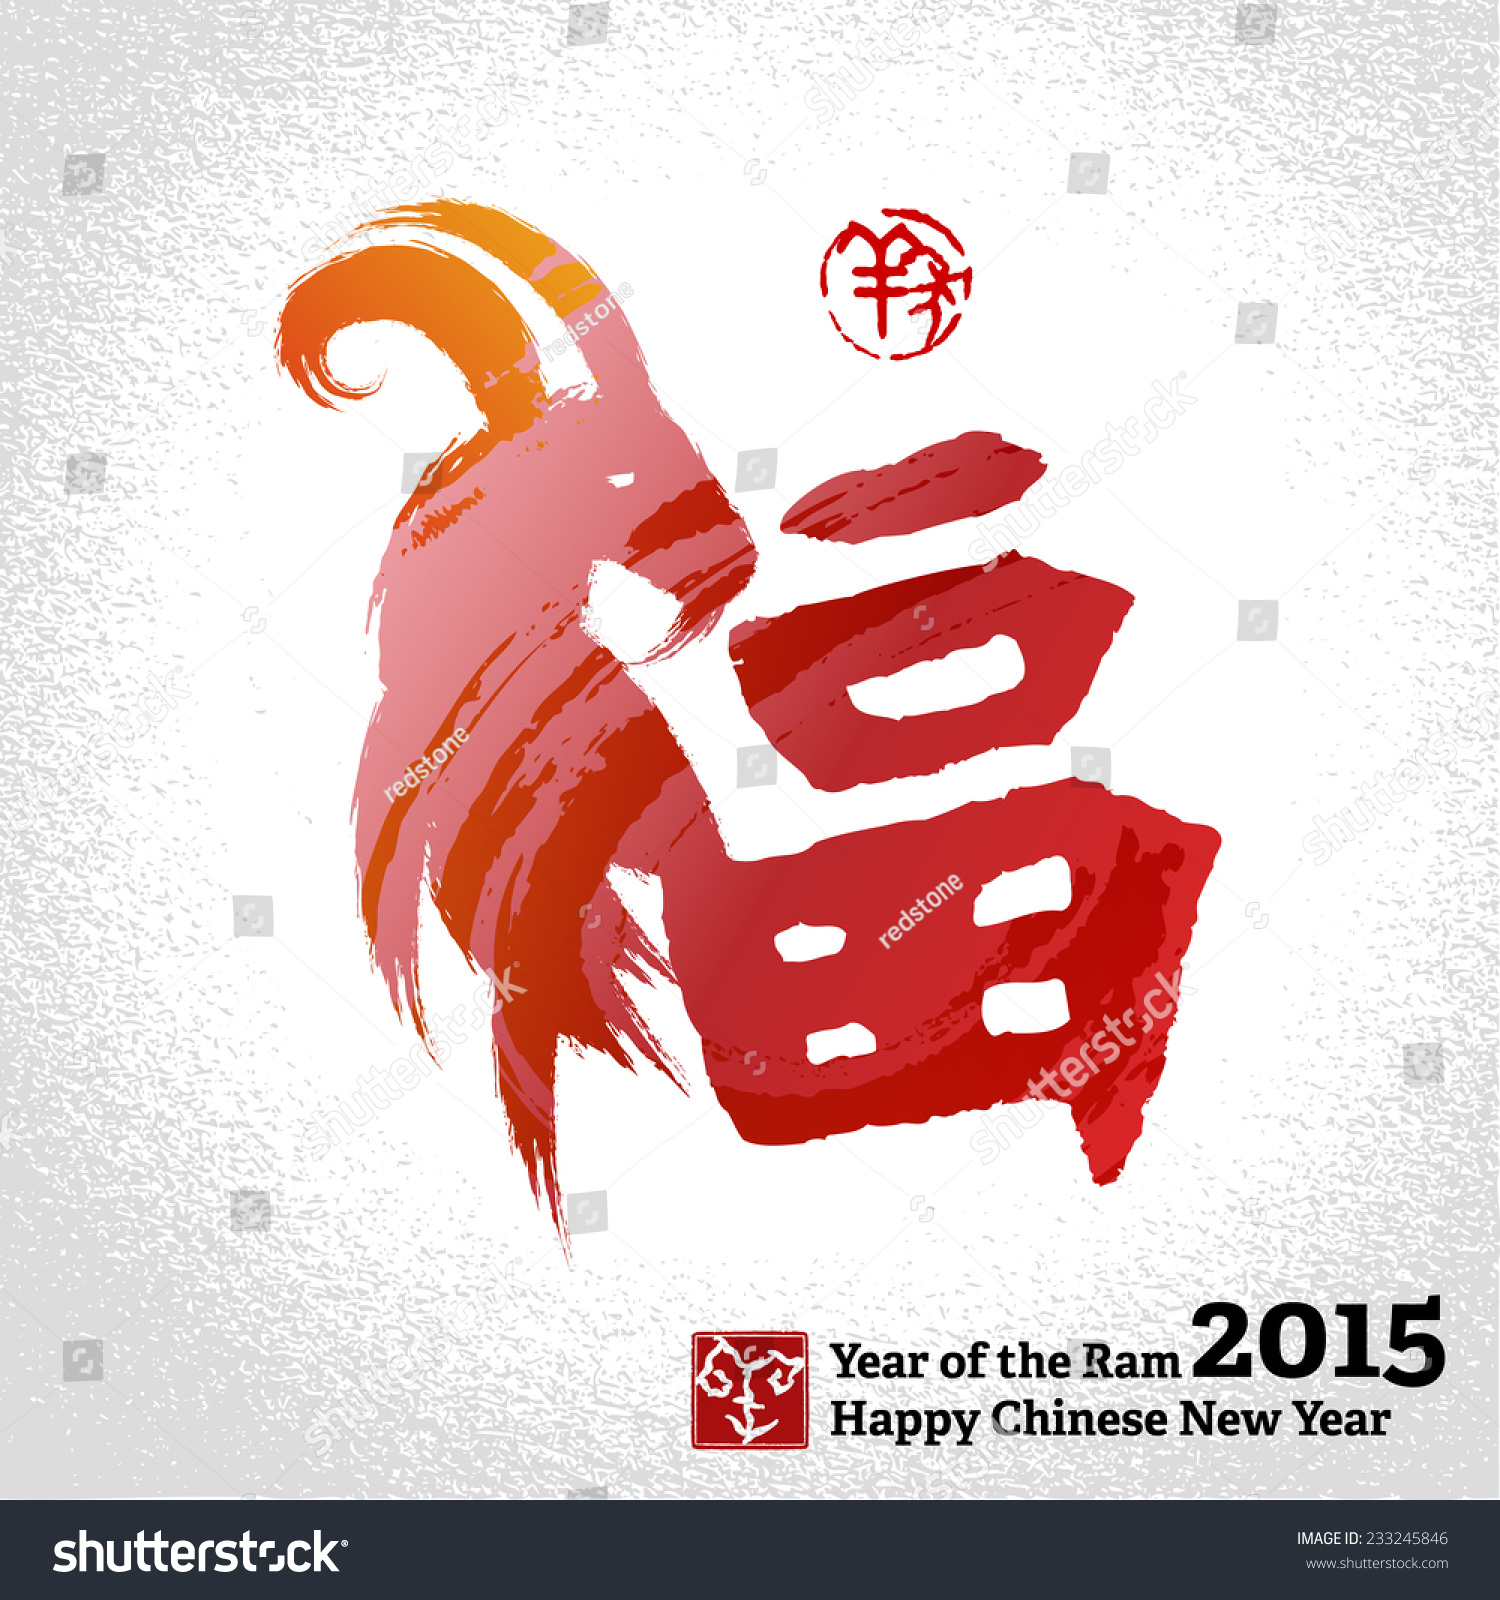 Royalty Free Chinese New Year Greeting Card 233245846 Stock Photo